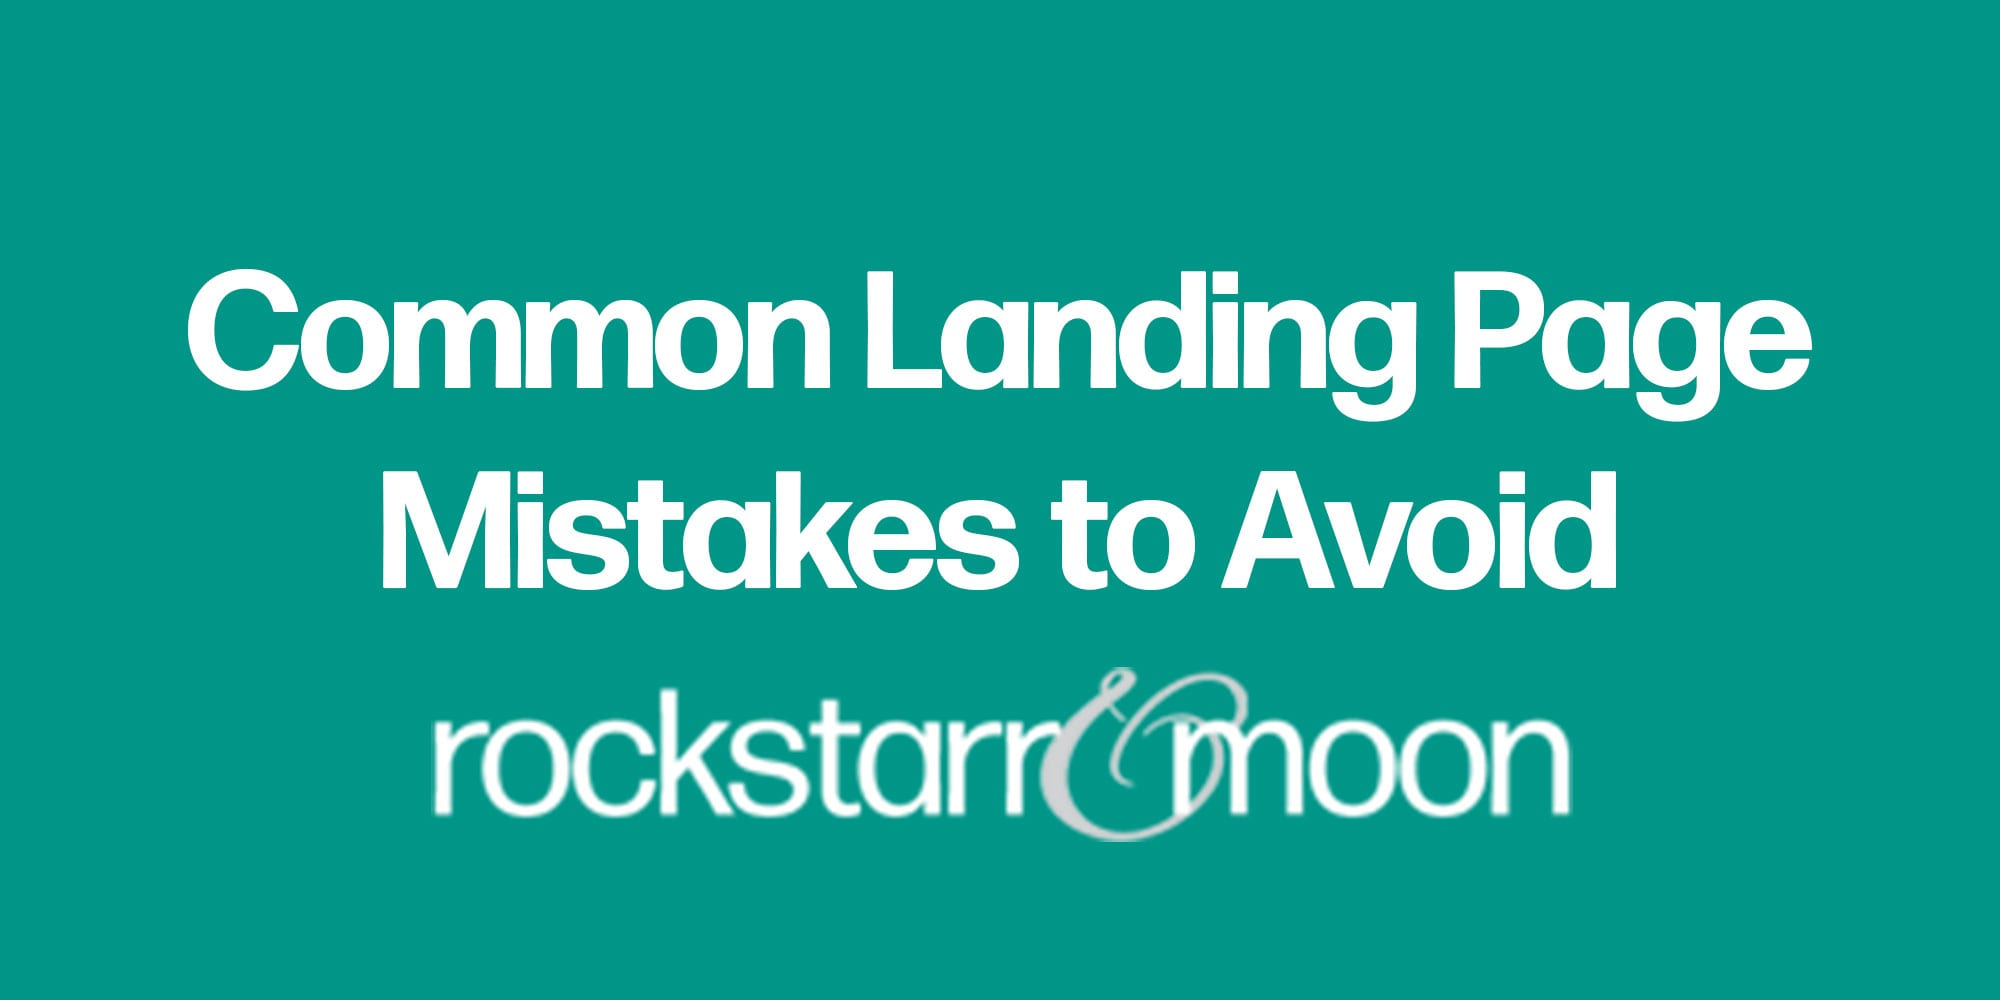 10 Common Landing Page Mistakes to Avoid